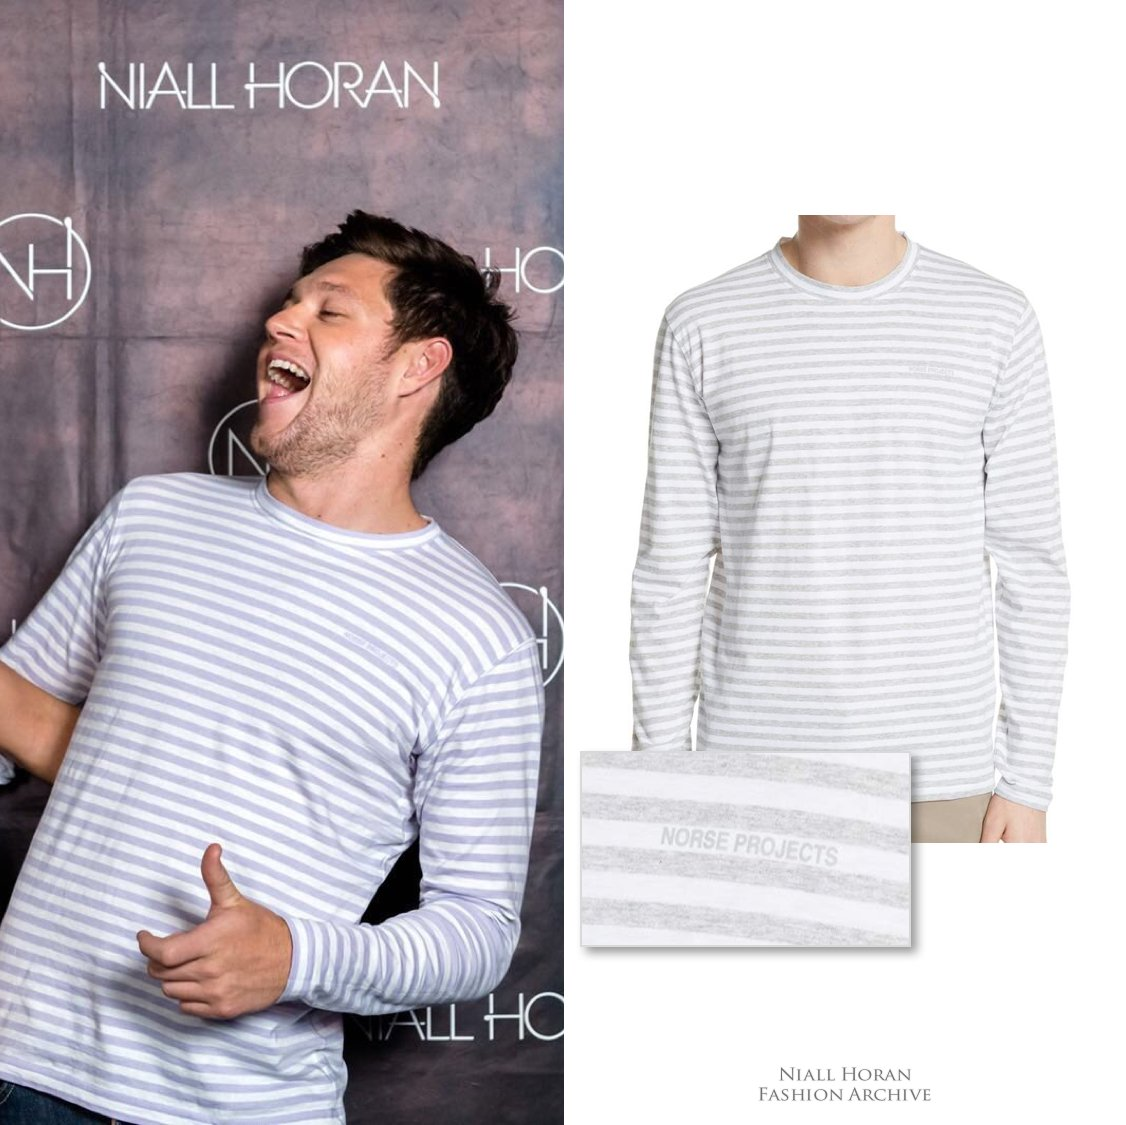 fd050a301 04/28/18 | Niall wore a @norseprojects James striped long-sleeve t-shirt  ($100) at the Amsterdam meet & greet. http://shopstyle.it/l/IjDk  pic.twitter.com/ ...